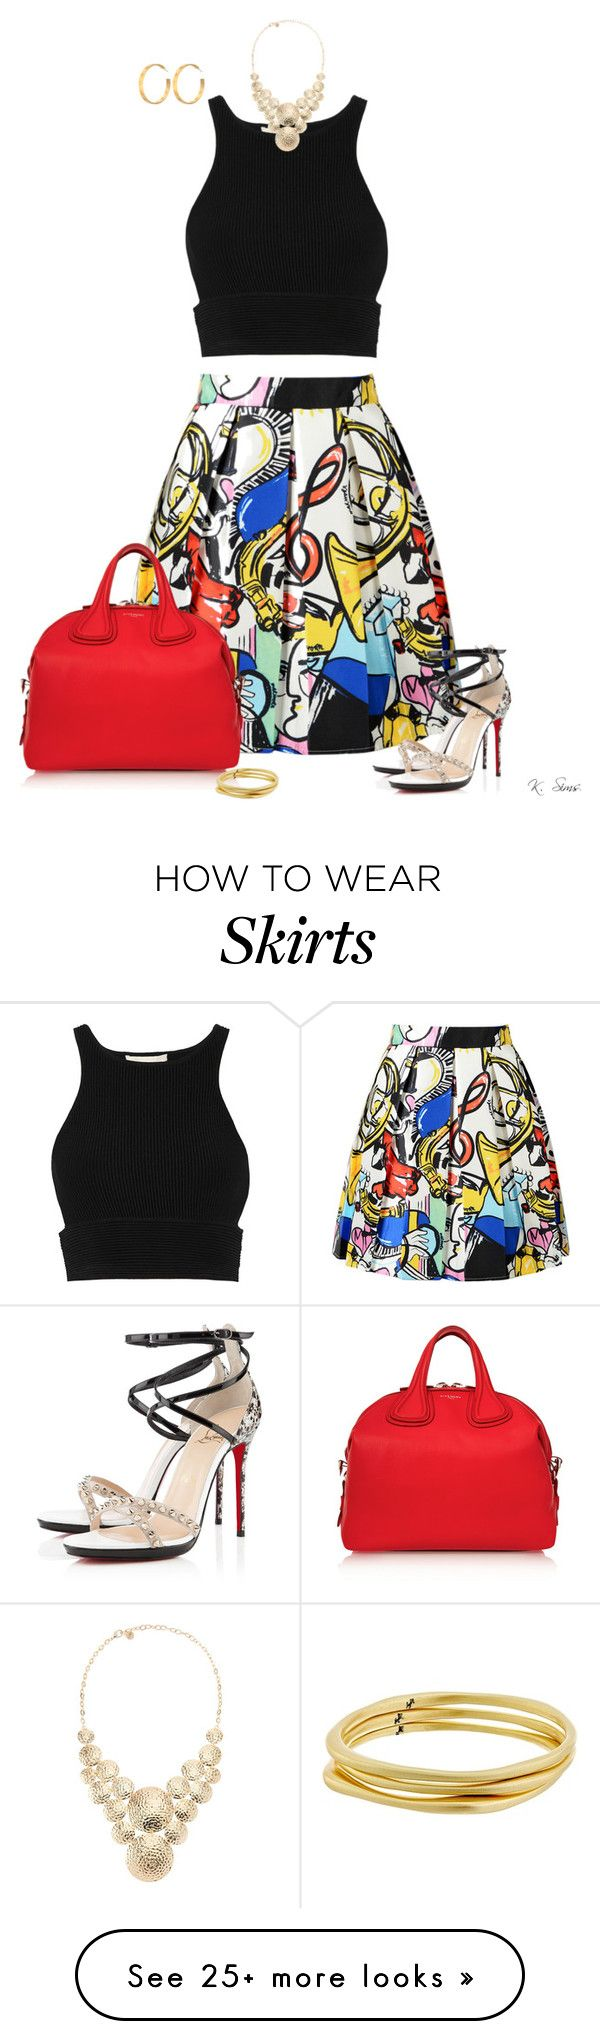 """""""Love this skirt......and shoes"""" by ksims-1 on Polyvore featuring WithChic, Jonathan Simkhai, Givenchy, R.J. Graziano, Karen Kane, Tory Burch and Christian Louboutin"""